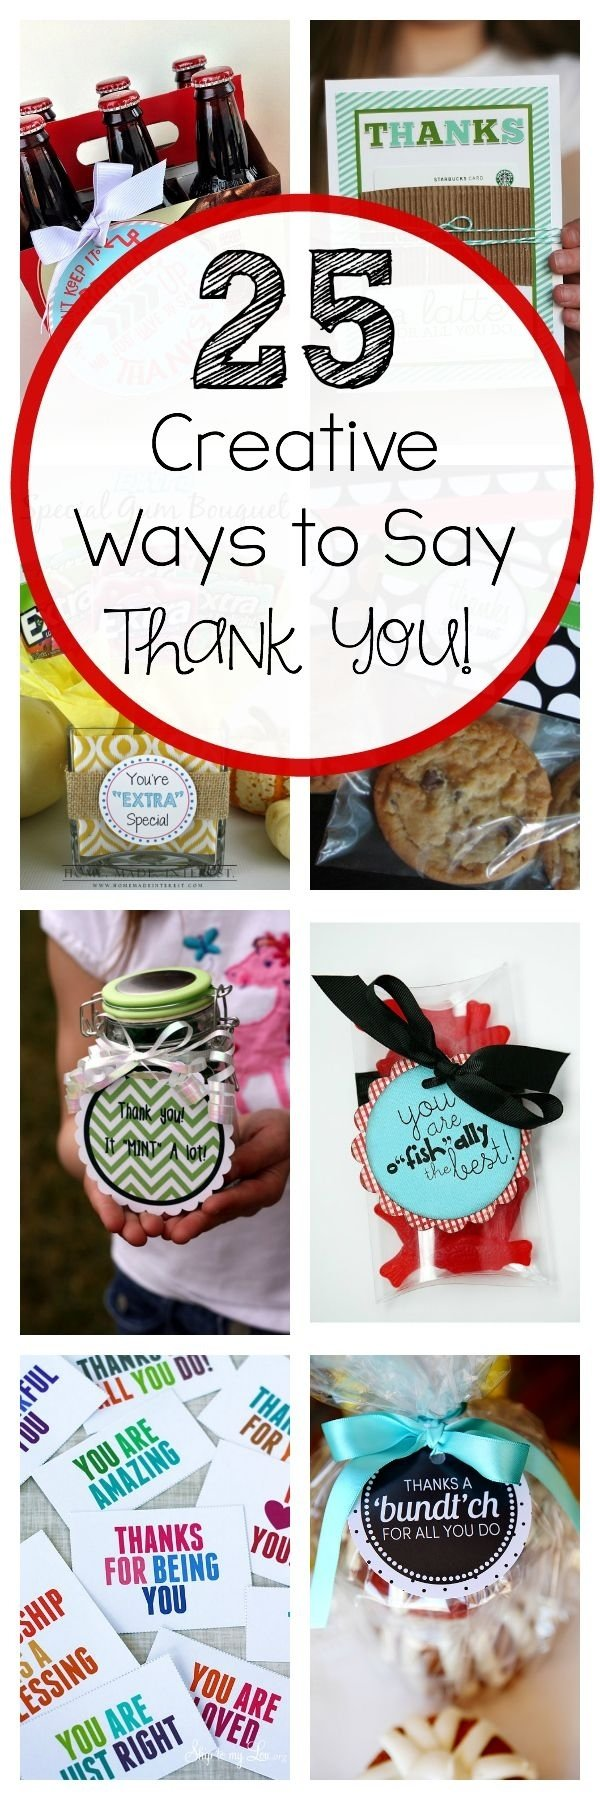 10 Most Recommended Thank You Gift Ideas For Women 103 best thank you gift ideas images on pinterest teacher 3